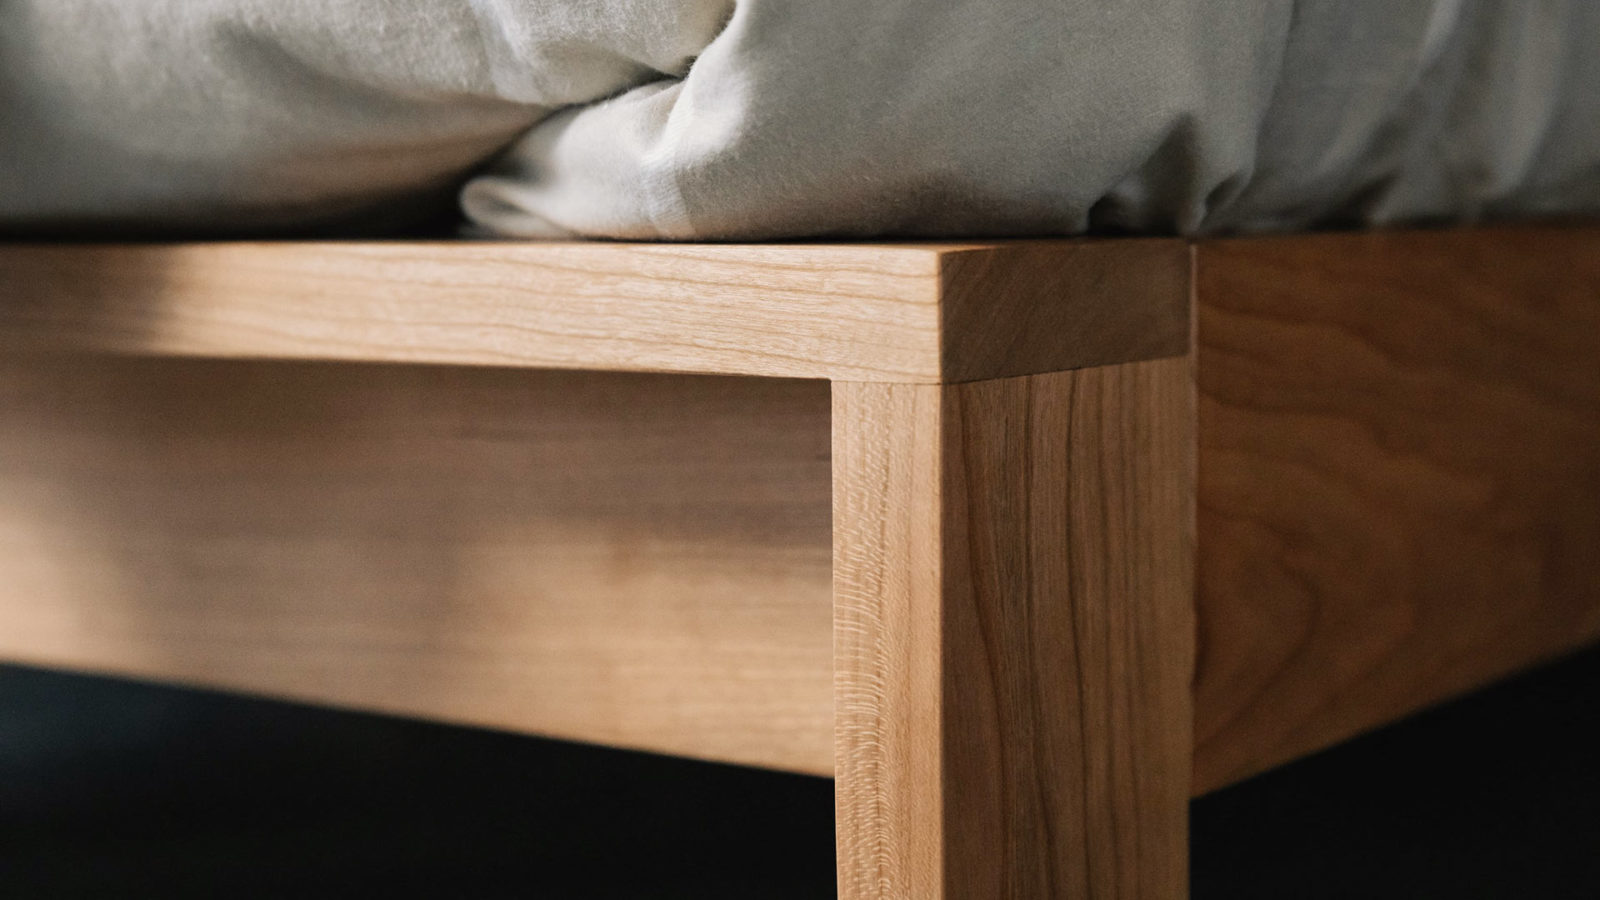 Shetland is a solid wood bed frame with an upholstered headboard, this is a close view of the leg joint detail